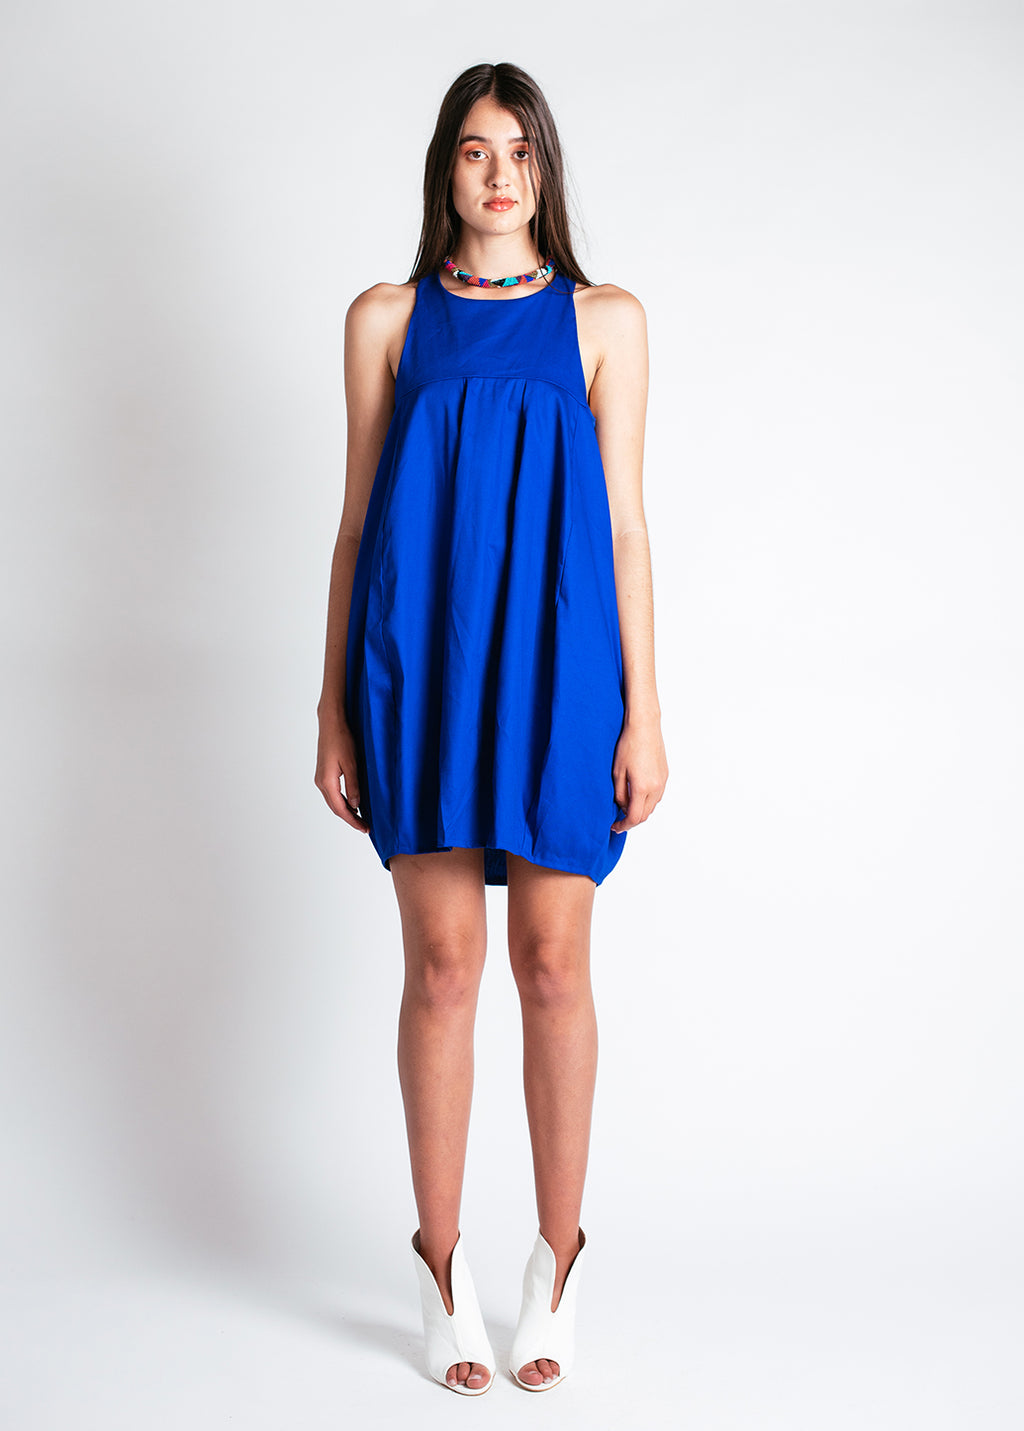 noctiluca day dress in blue - Carley Rose The Label